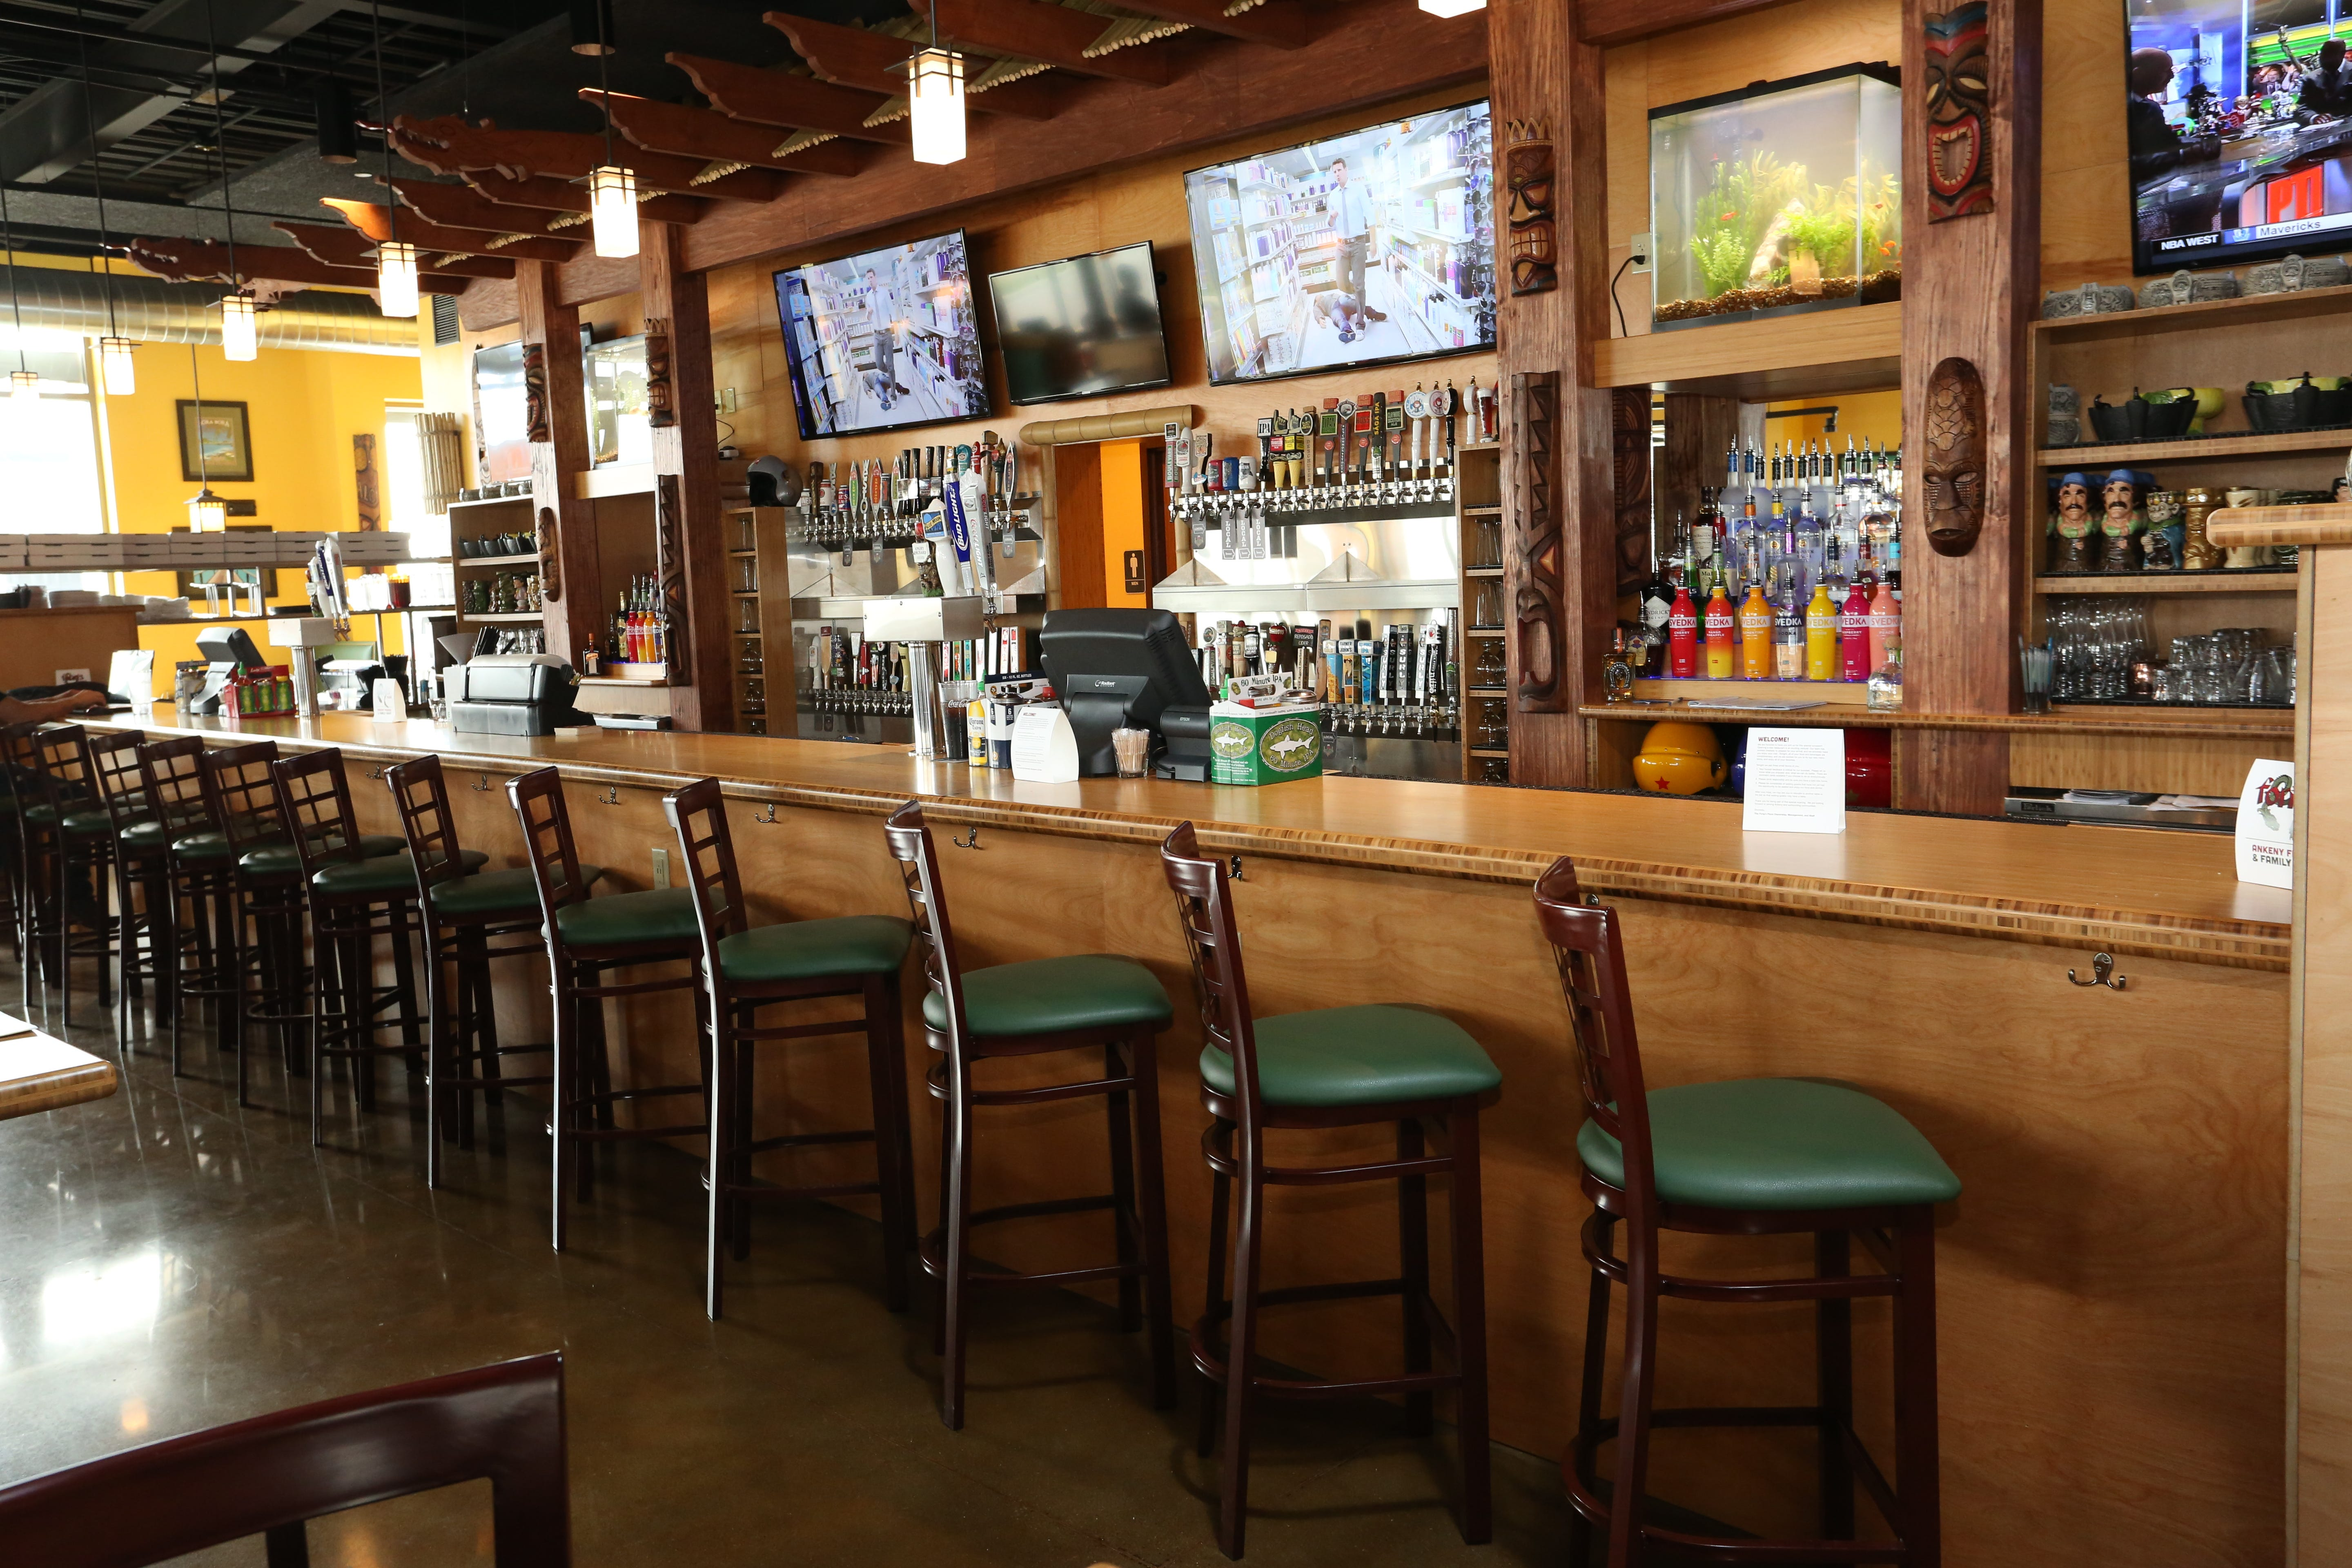 http://www.desmoinesregister.com/picture-gallery/entertainment/dining ...